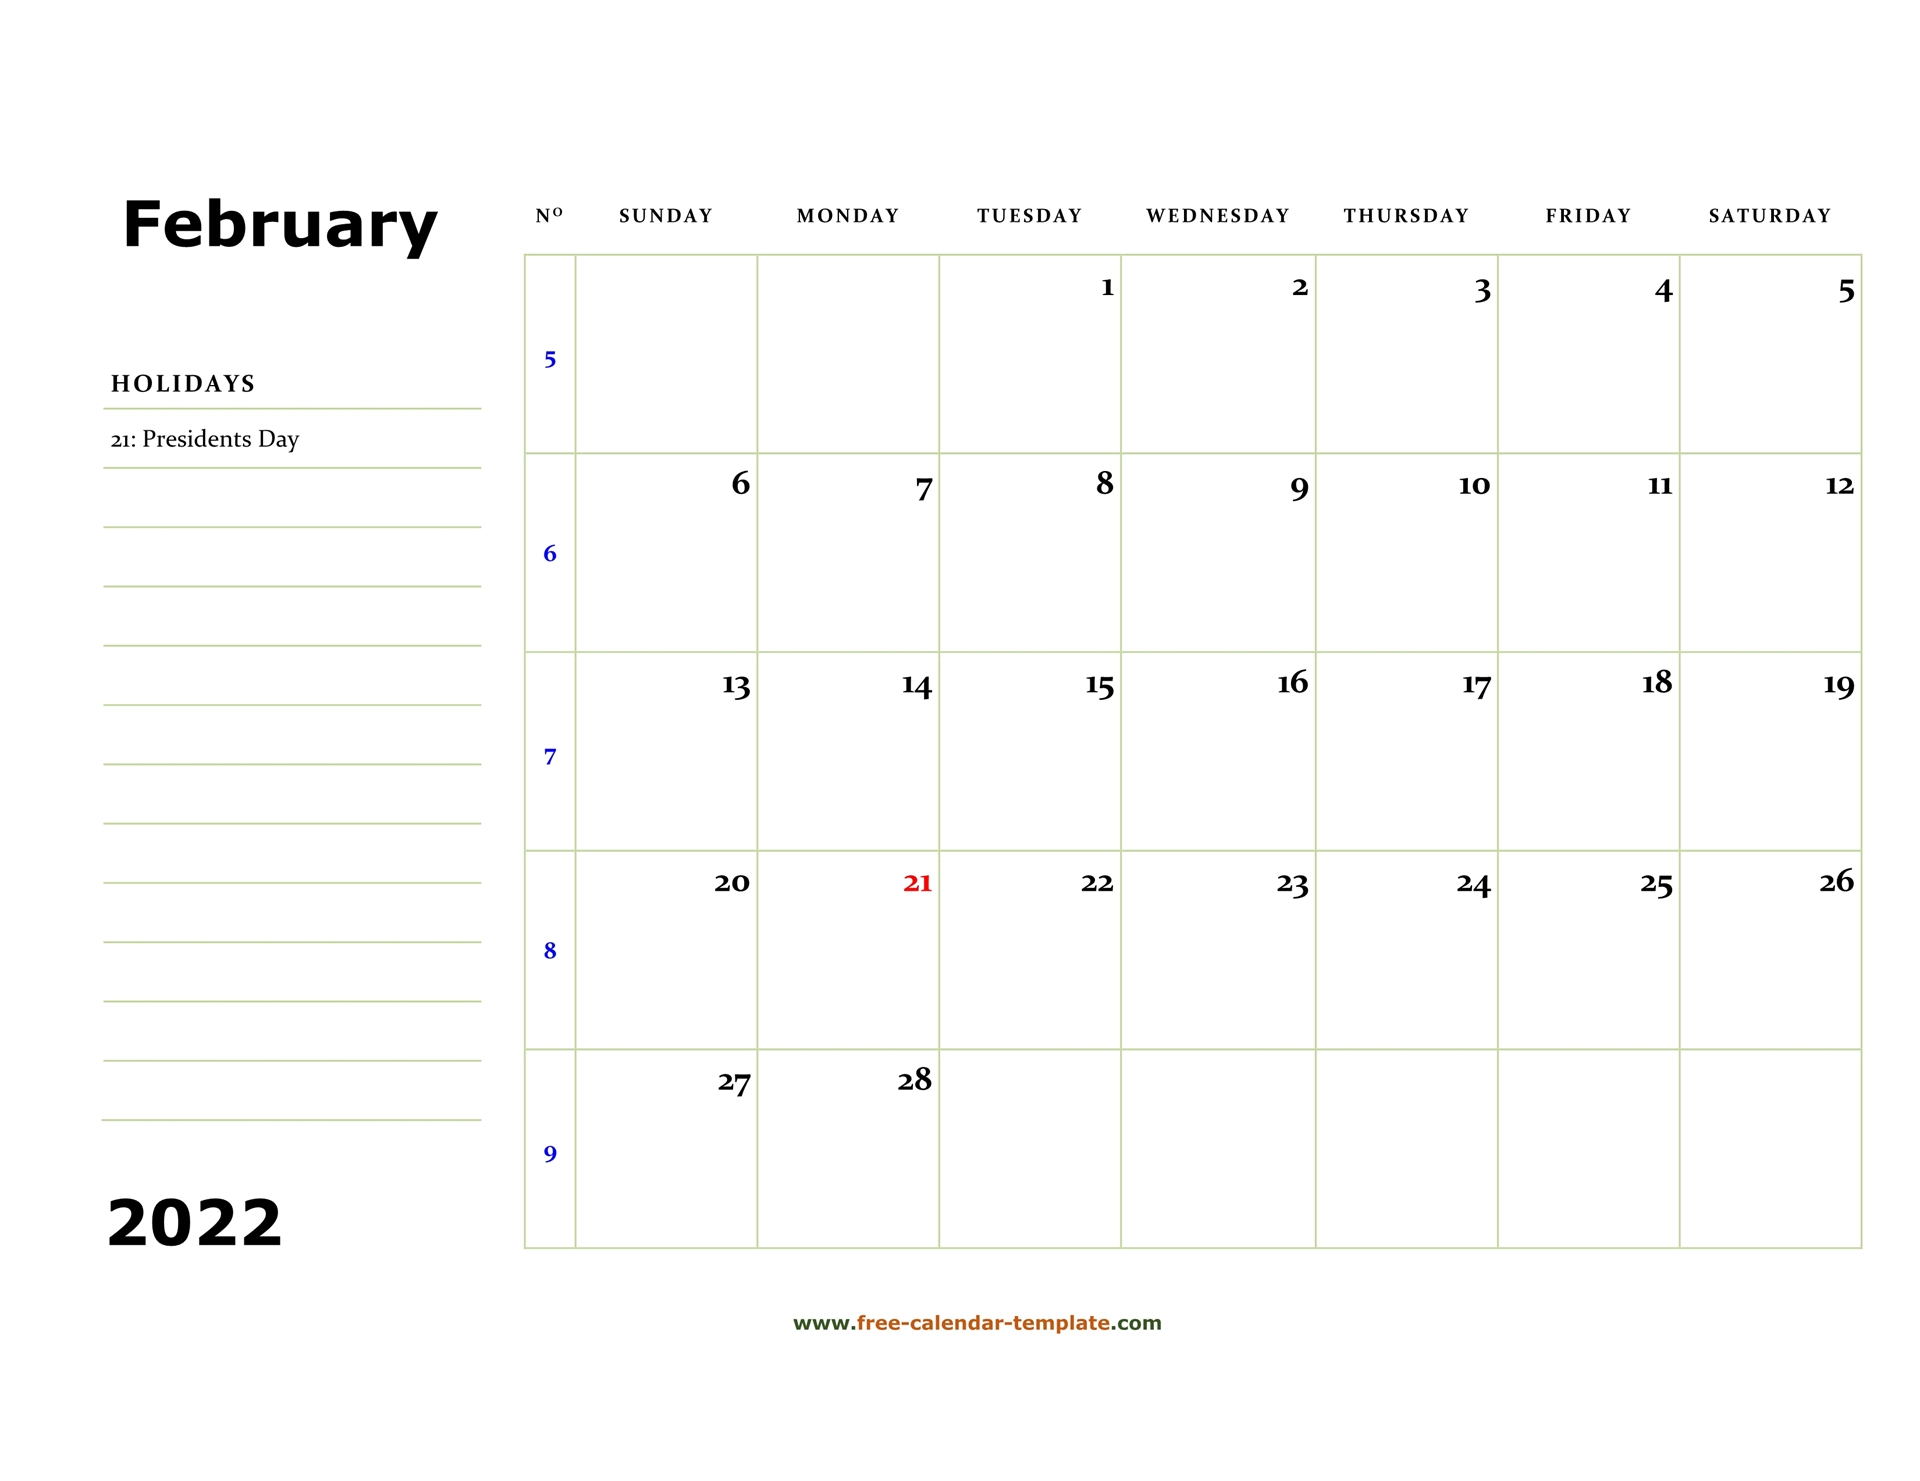 Printable February 2022 Calendar (Box And Lines For Notes inside Printable February 2022 Calendar